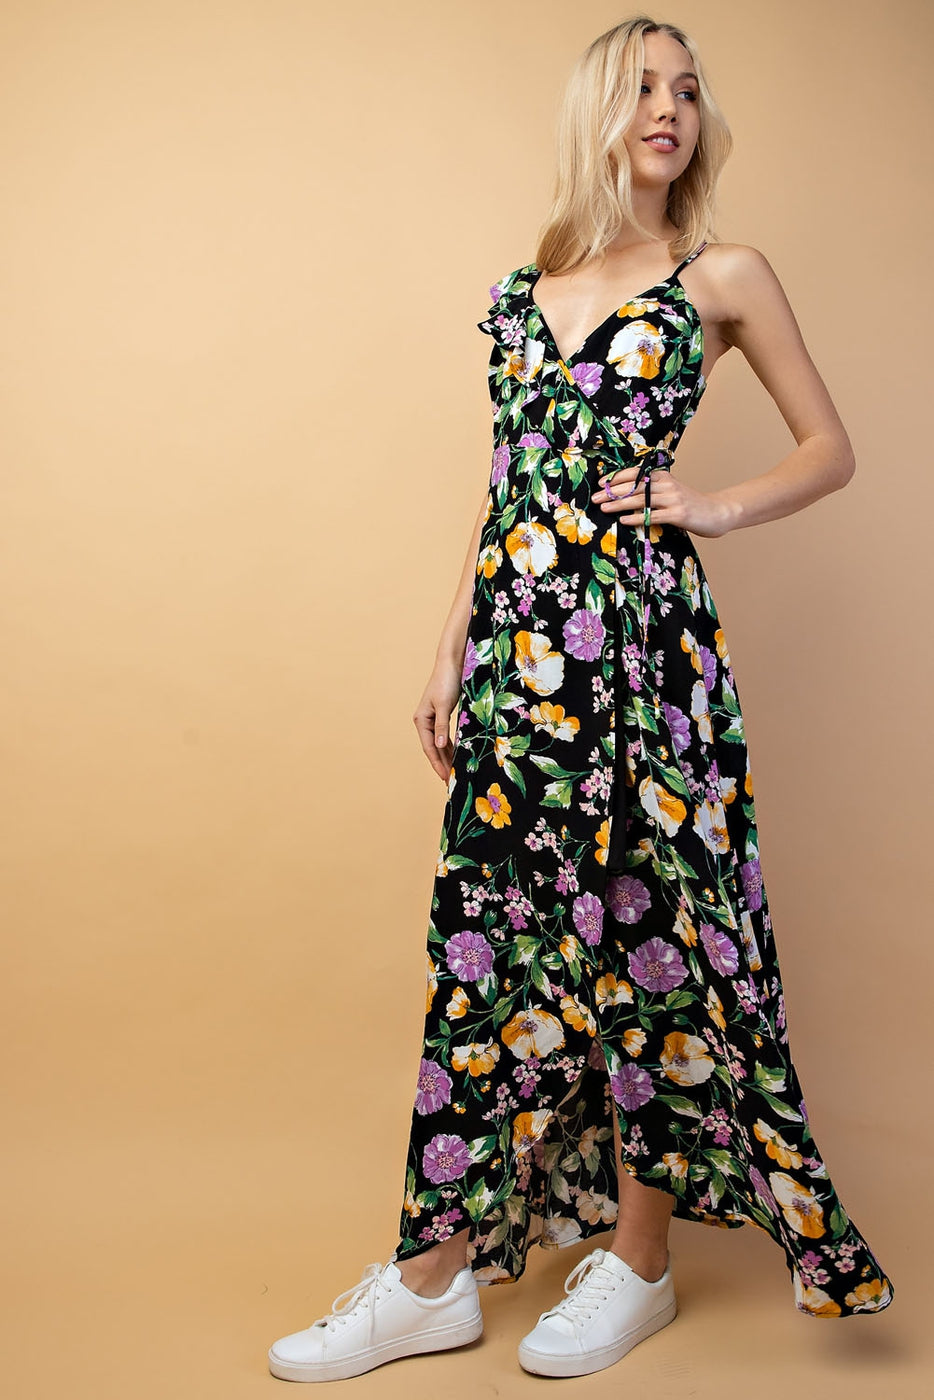 Asymmetrical Shoulder Detail Maxi Dress In Black Floral Siin Bees